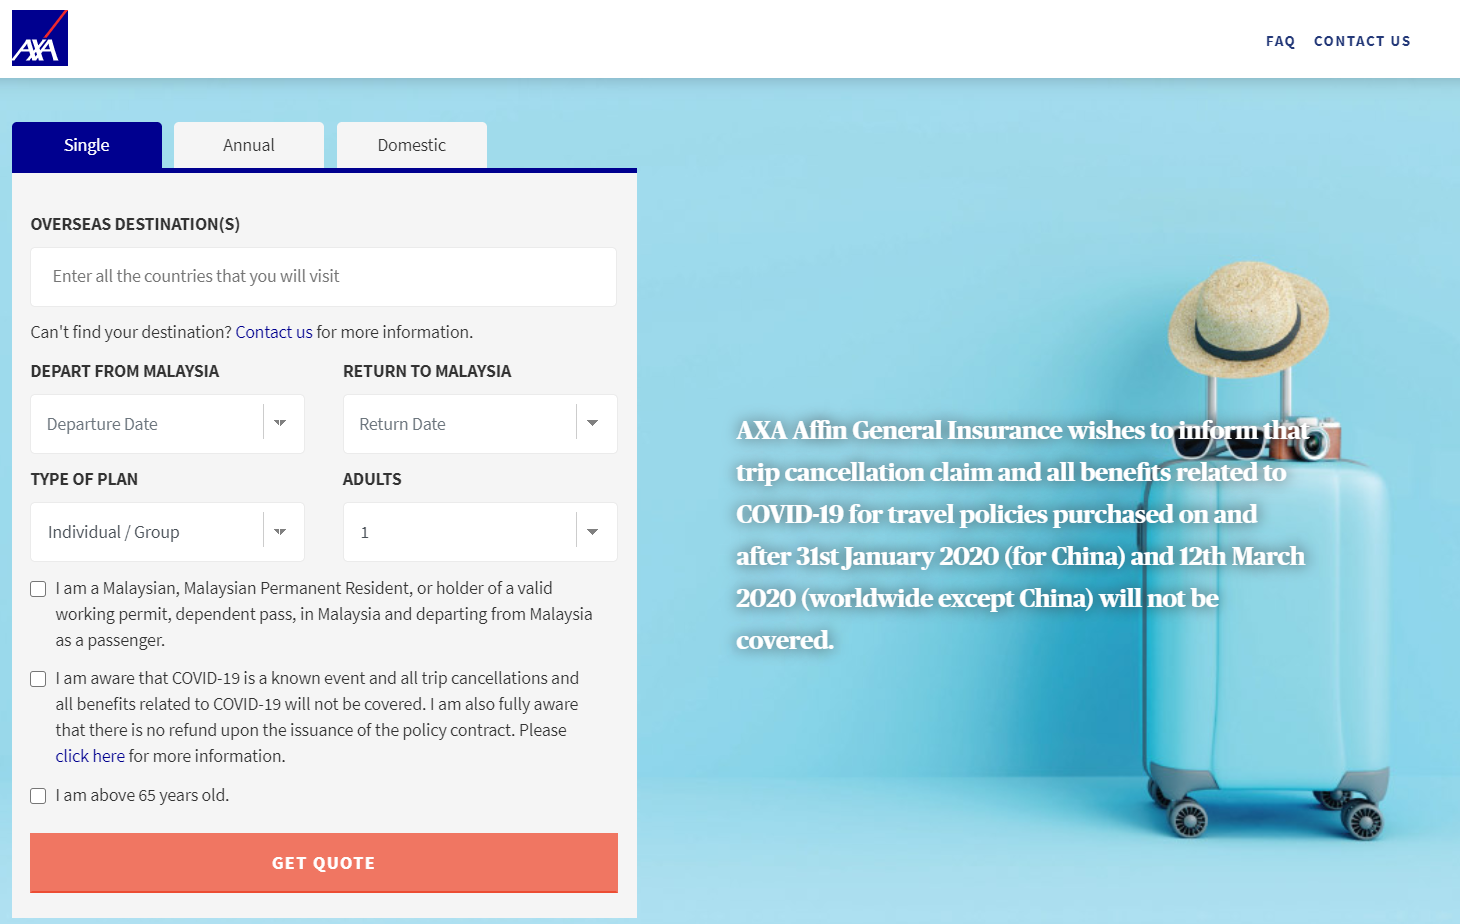 AXA Quote Page - Digital Travel Insurance for Covid-19